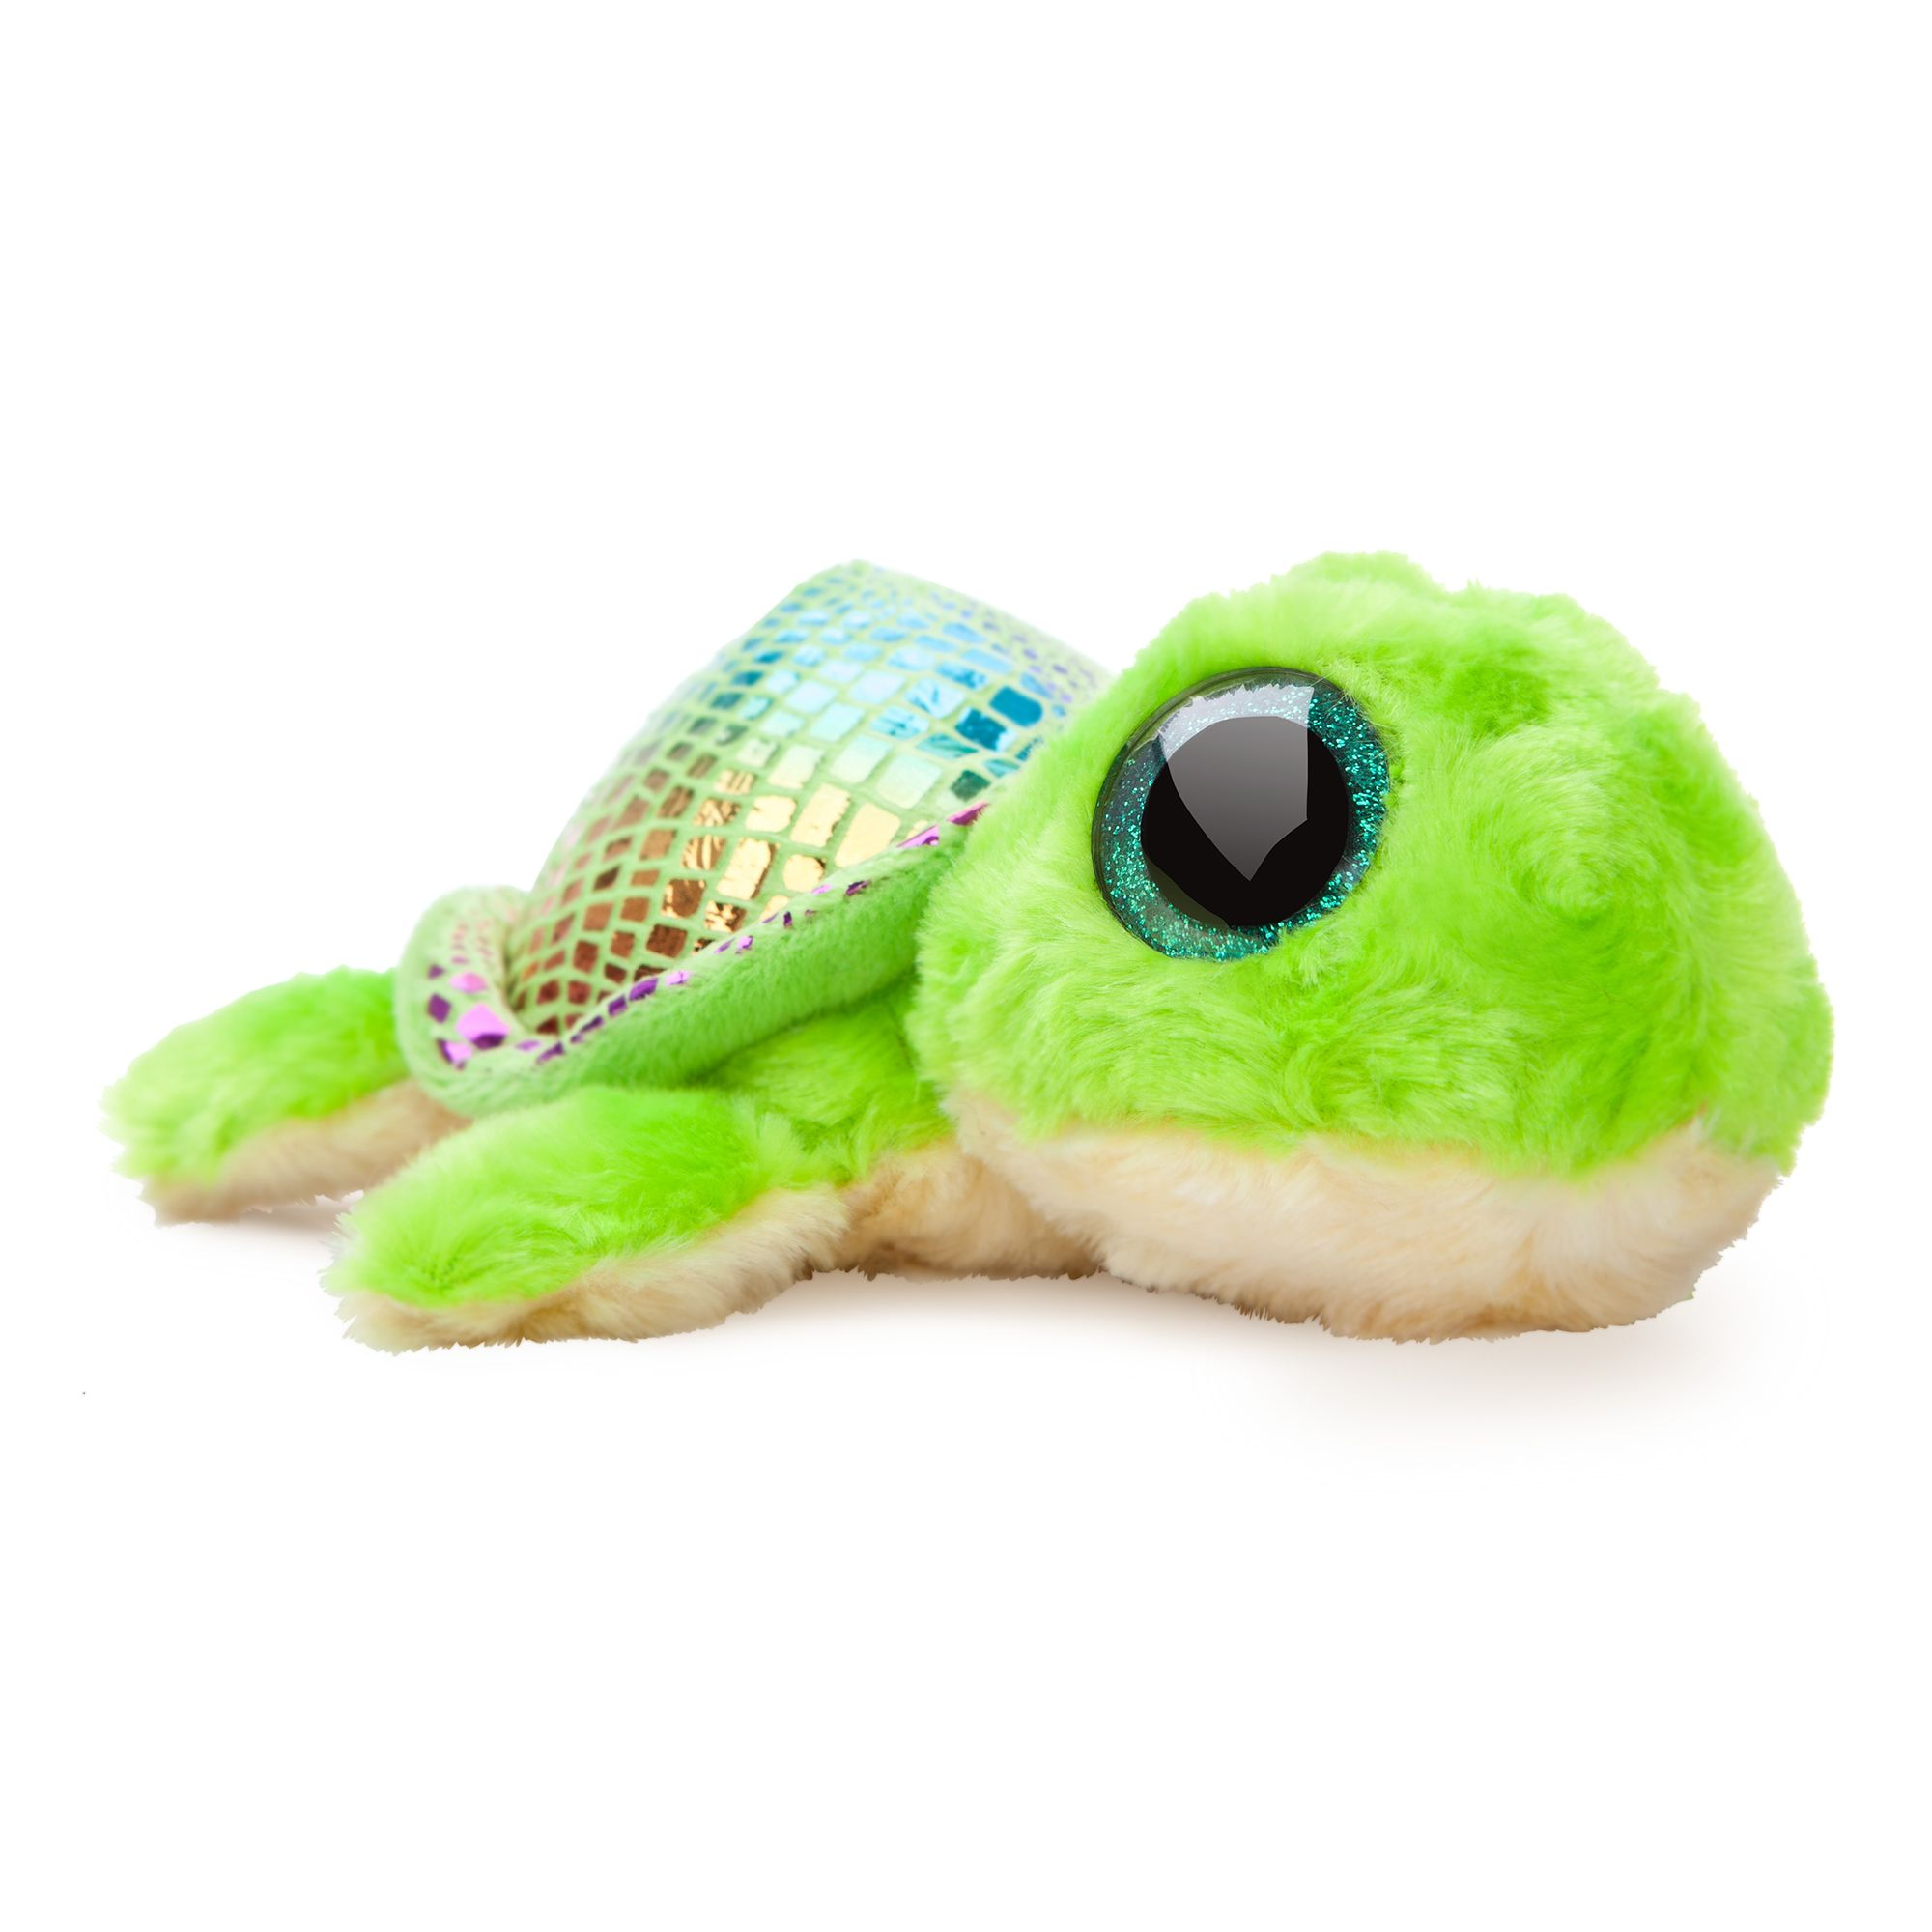 Image of YooHoo & Friends 8-Inch Flippee Green Turtle, Green